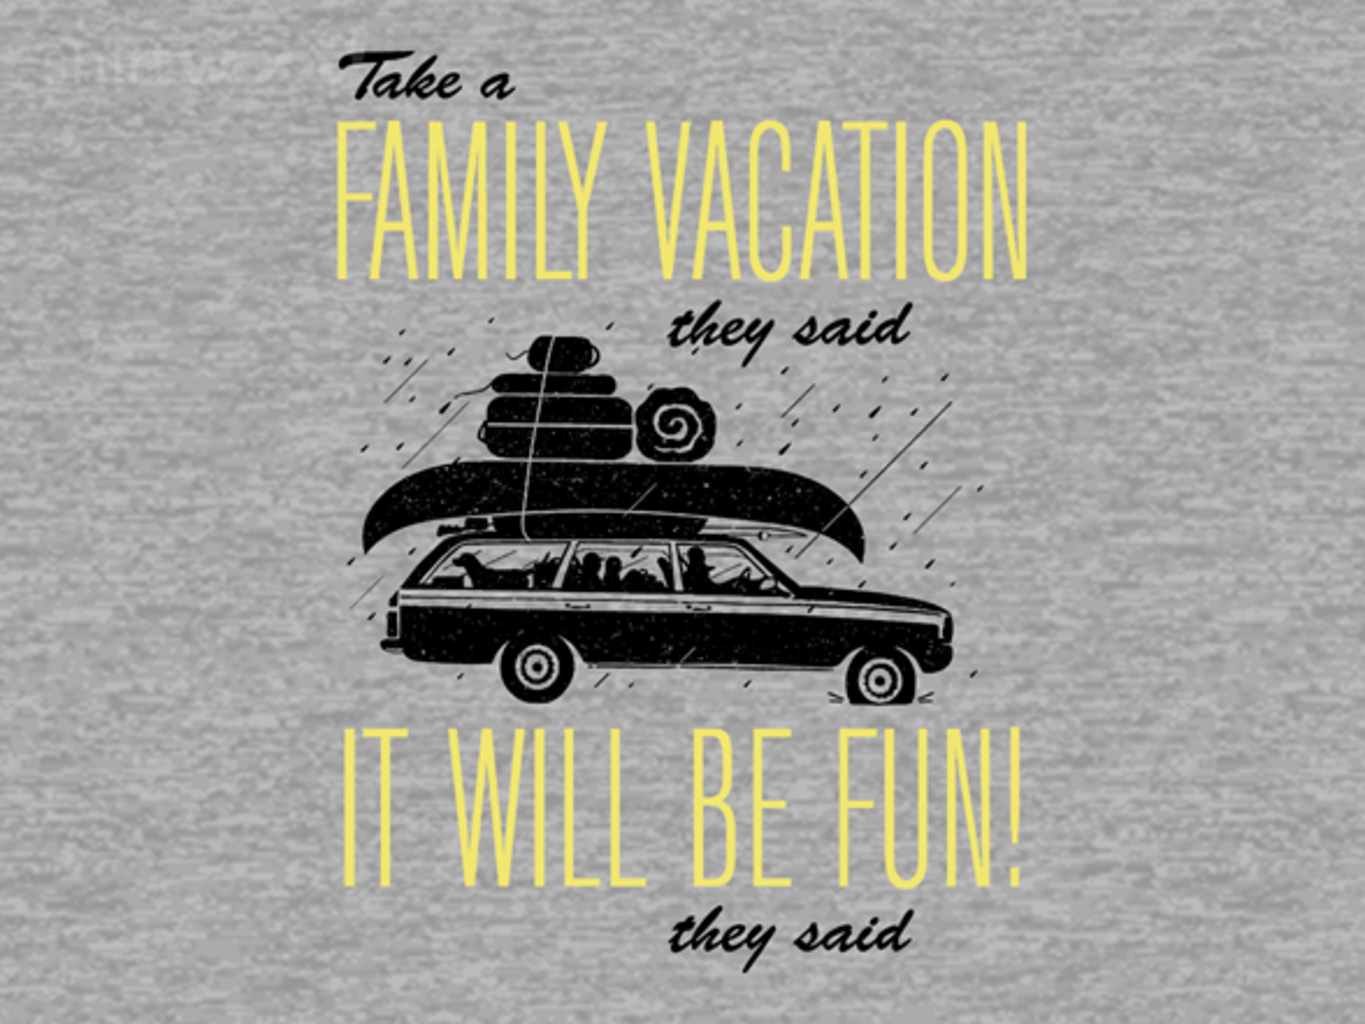 Woot!: Take a Family Vacation